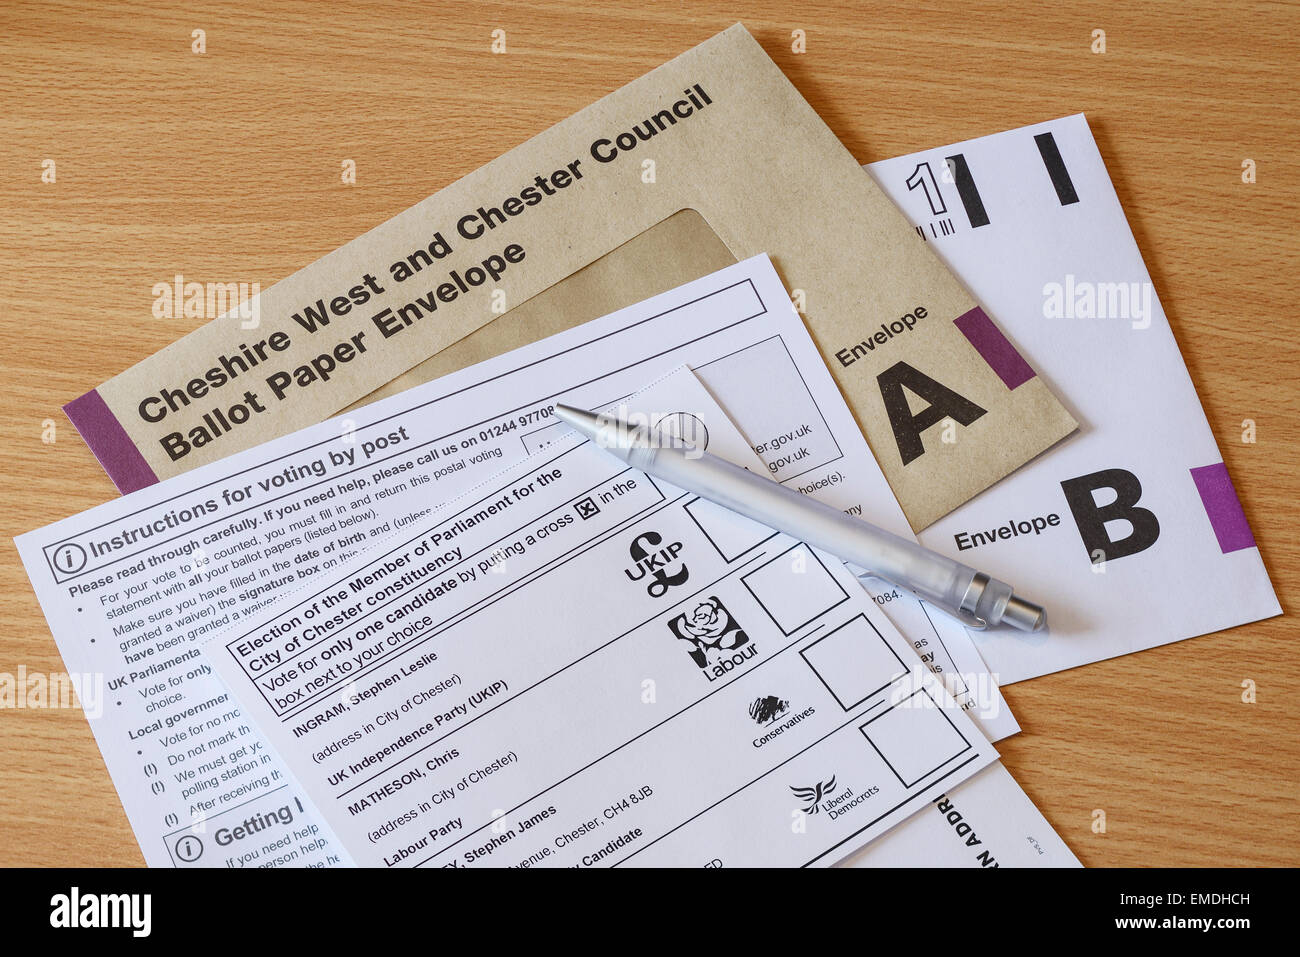 UK General Election on 7th May 2015. Postal voting forms have been sent out for the City of Chester constituency. - Stock Image